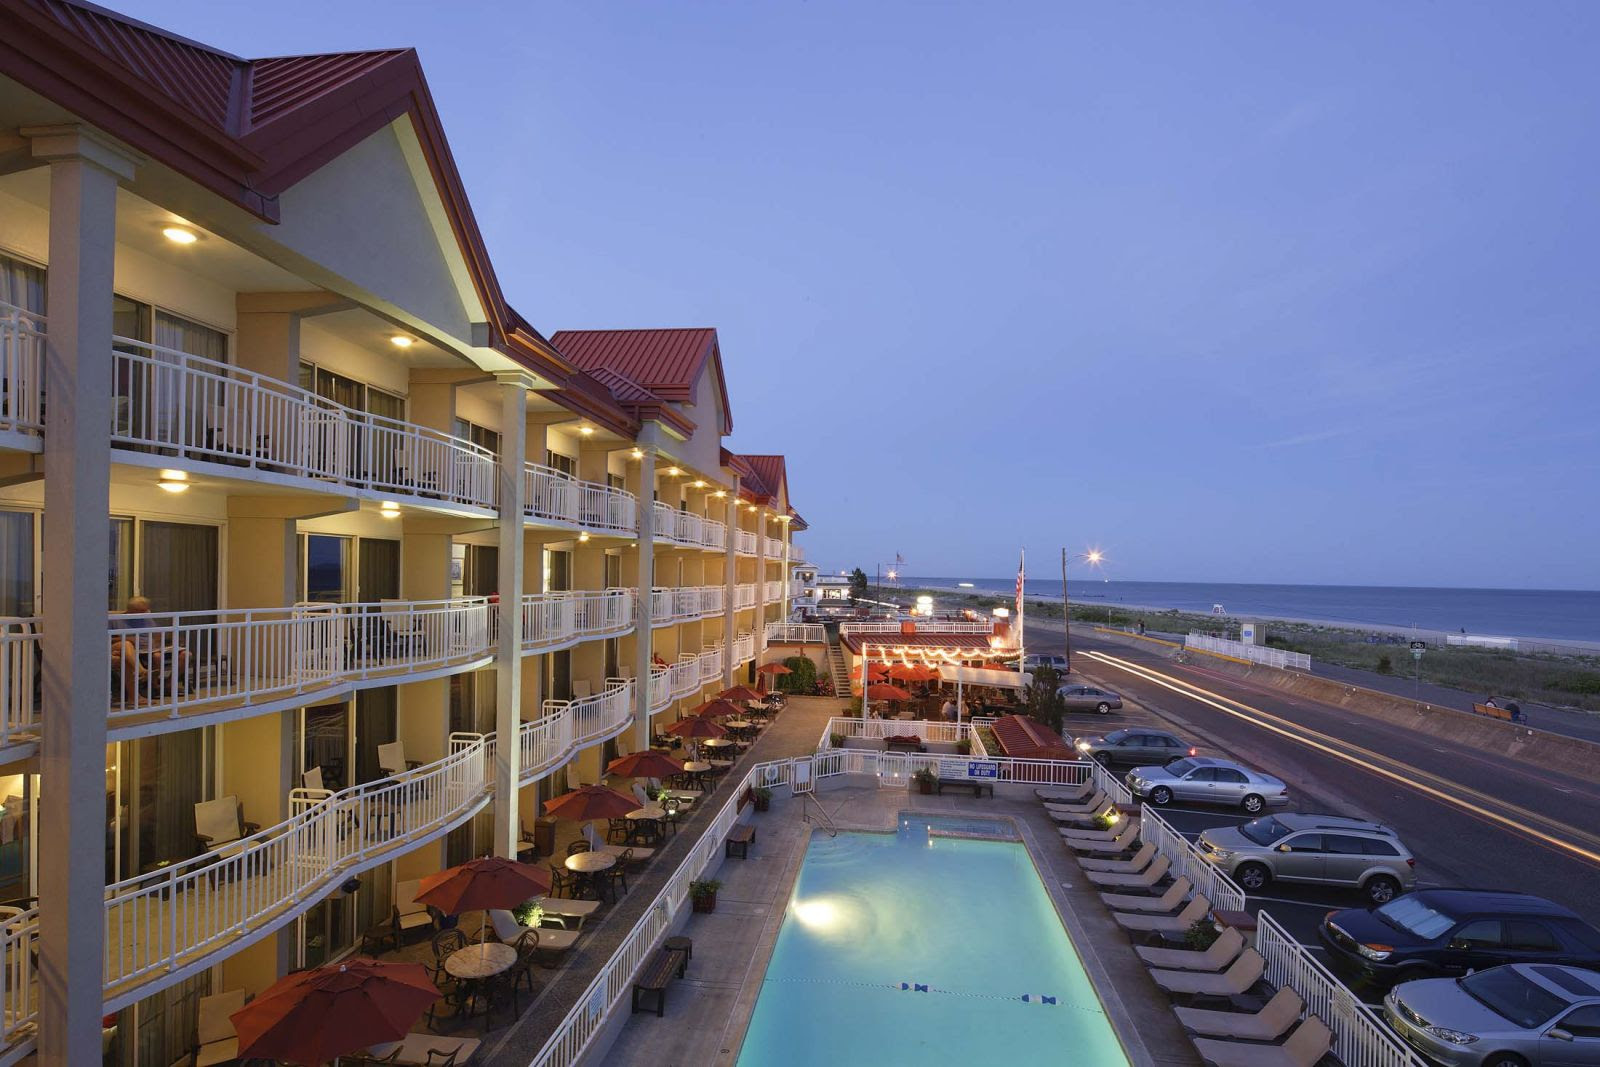 Cape May New Jersey Hotels  CapeMayResortcom